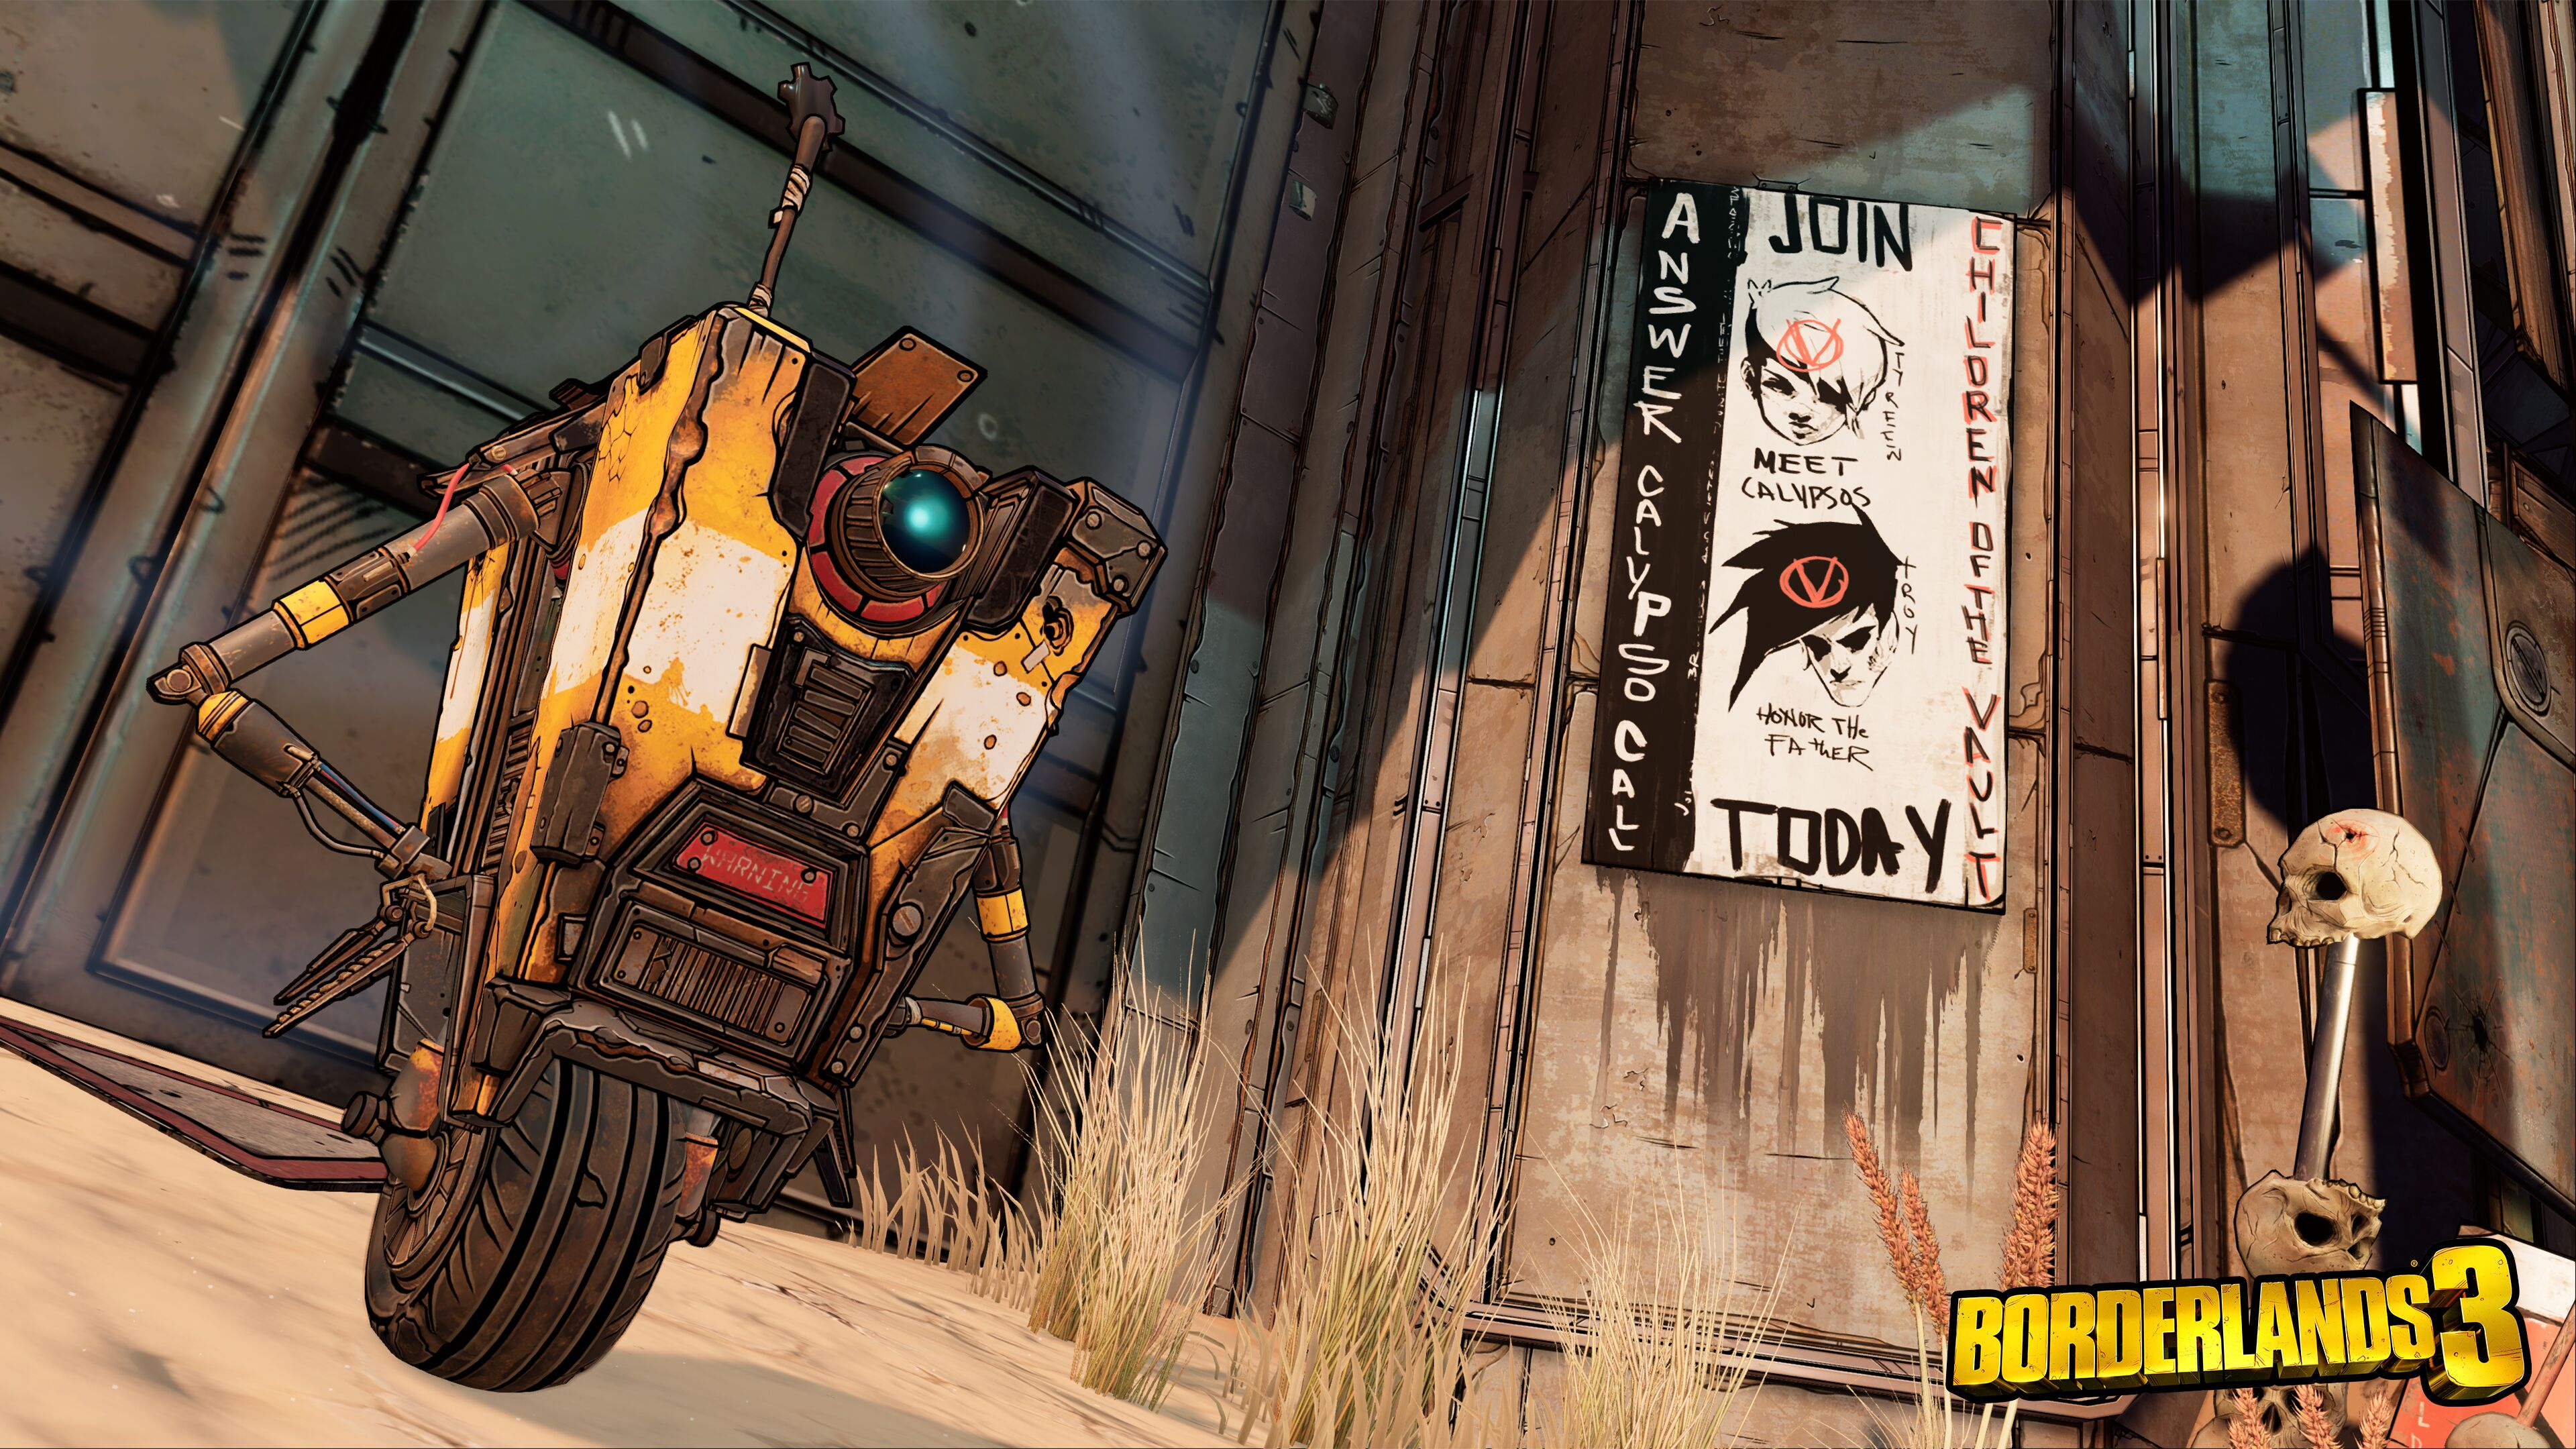 Borderlands 3 will be exclusive to the Epic Store on PC - The Verge